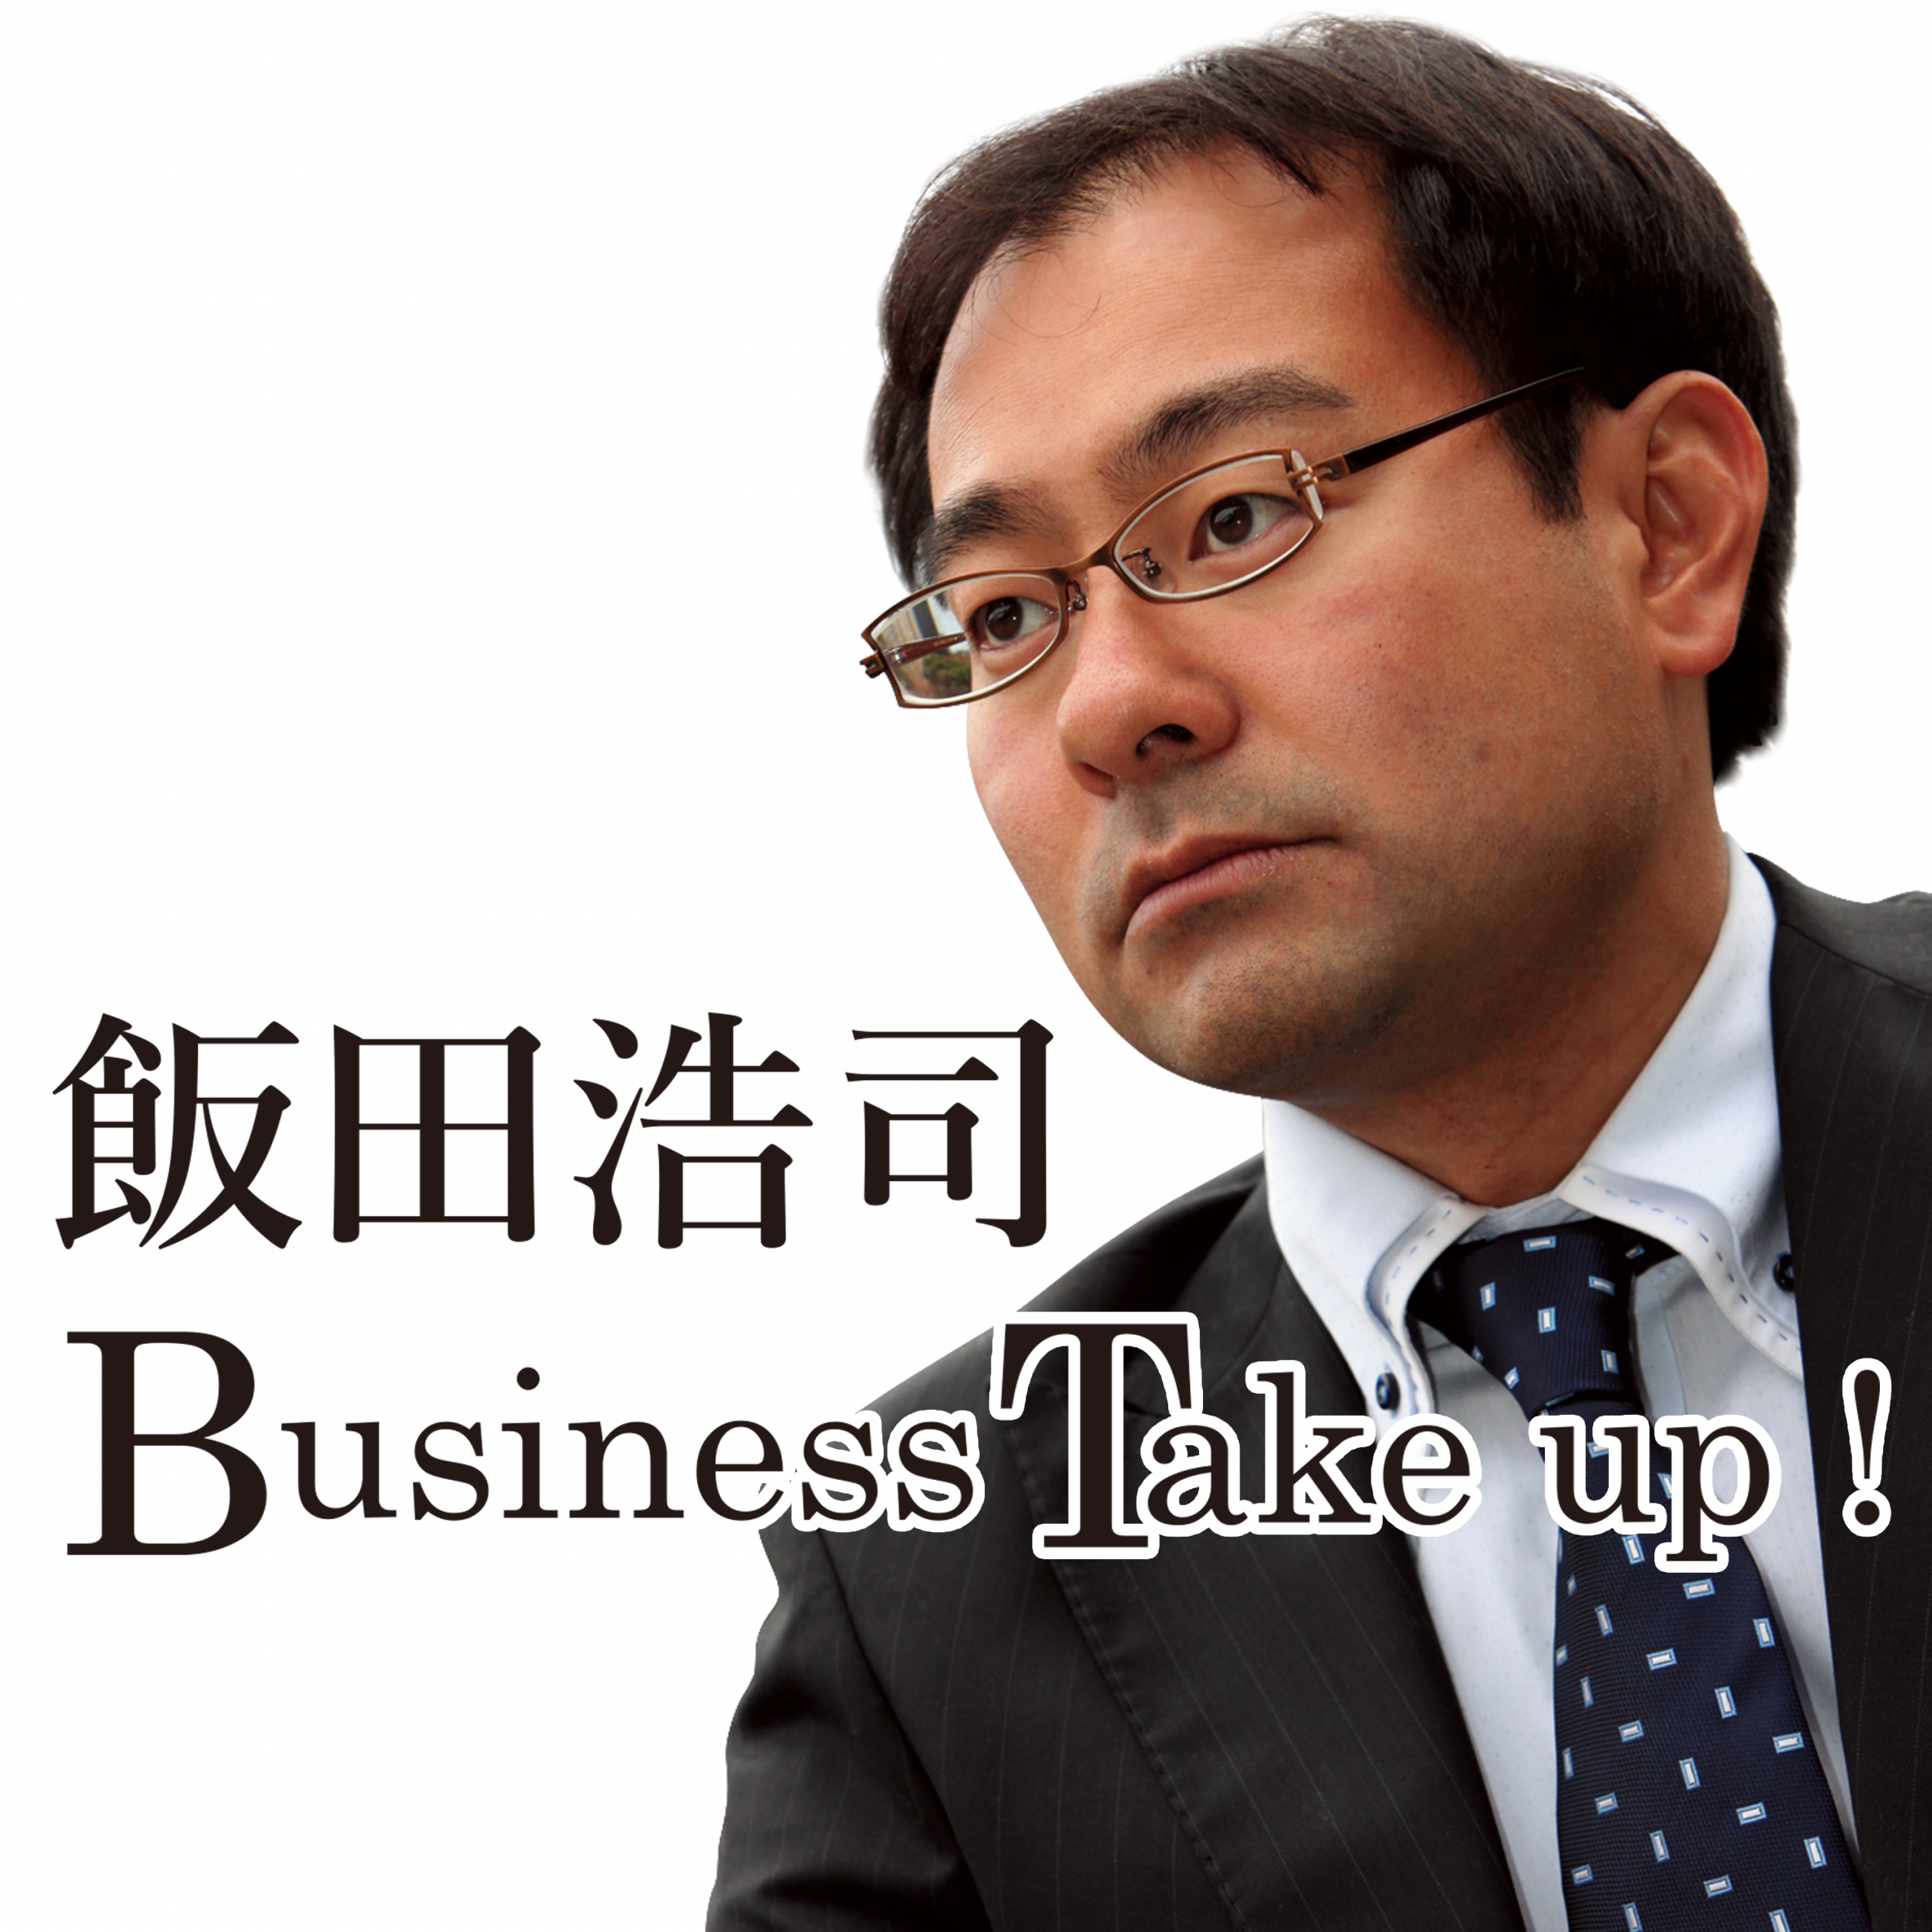 飯田浩司 Business Take up!